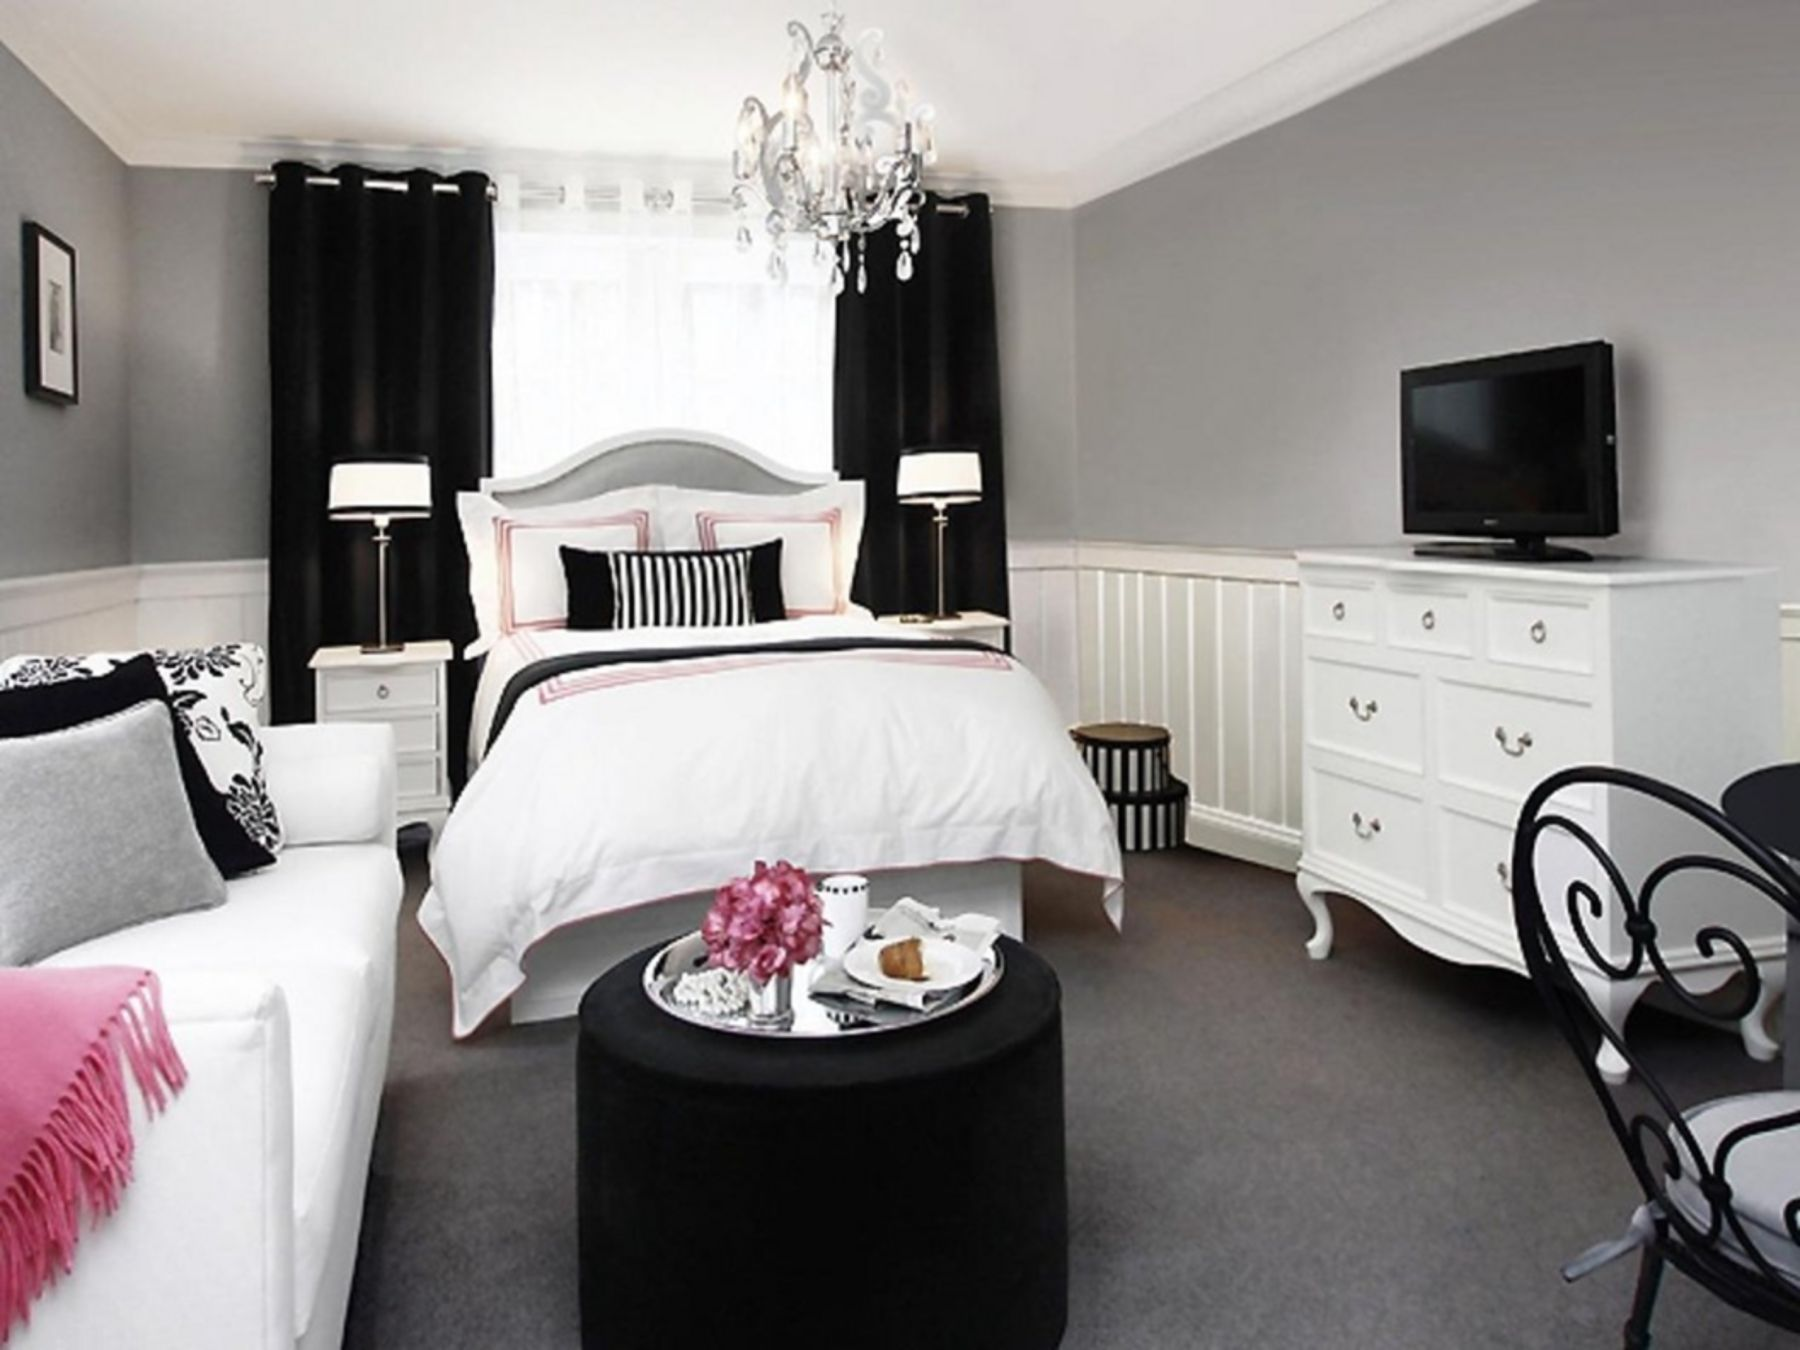 15 Awesome Black And White Bedroom Design Ideas For Best Your